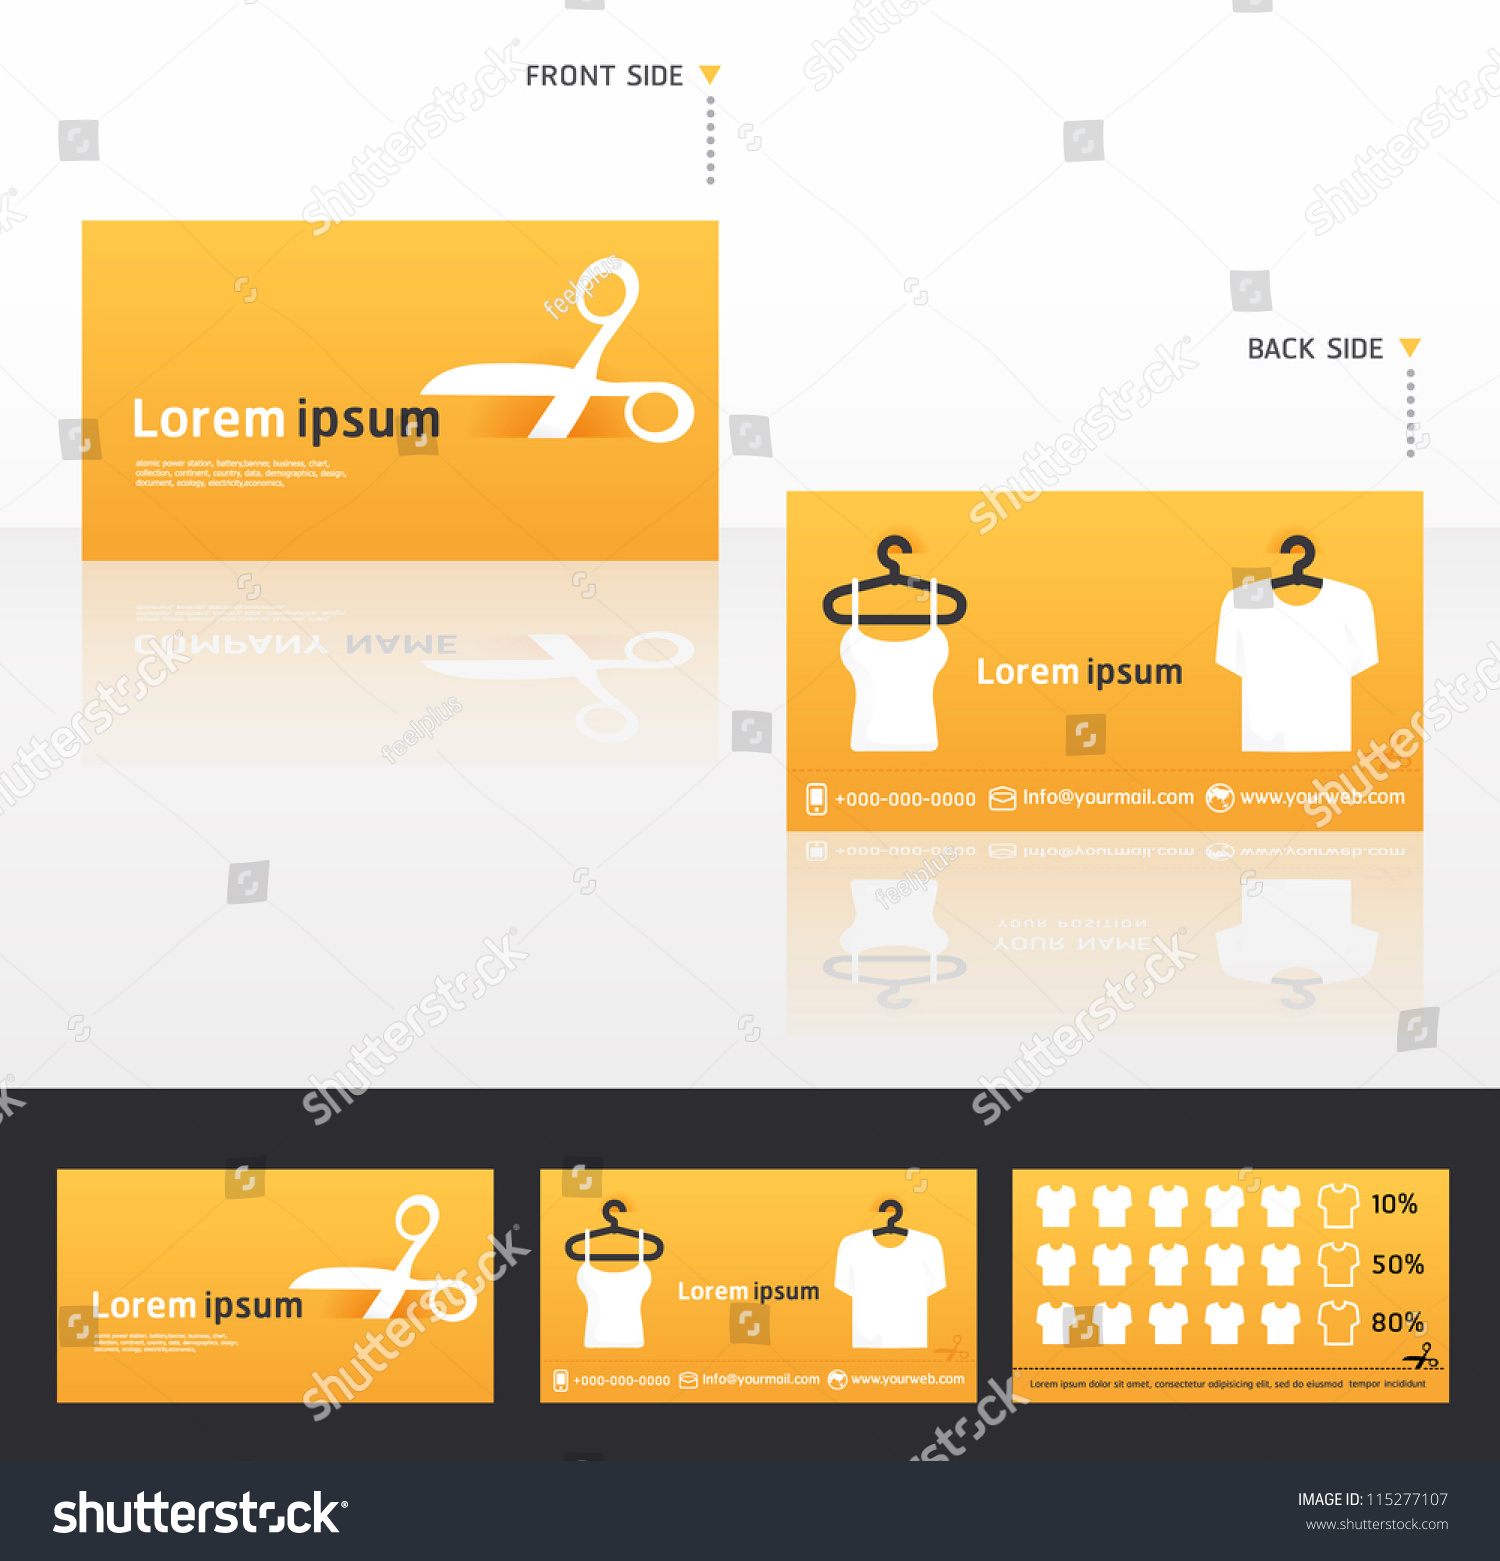 Clothes Business Cards Discount Promotional Cardsvector Stock Vector ...